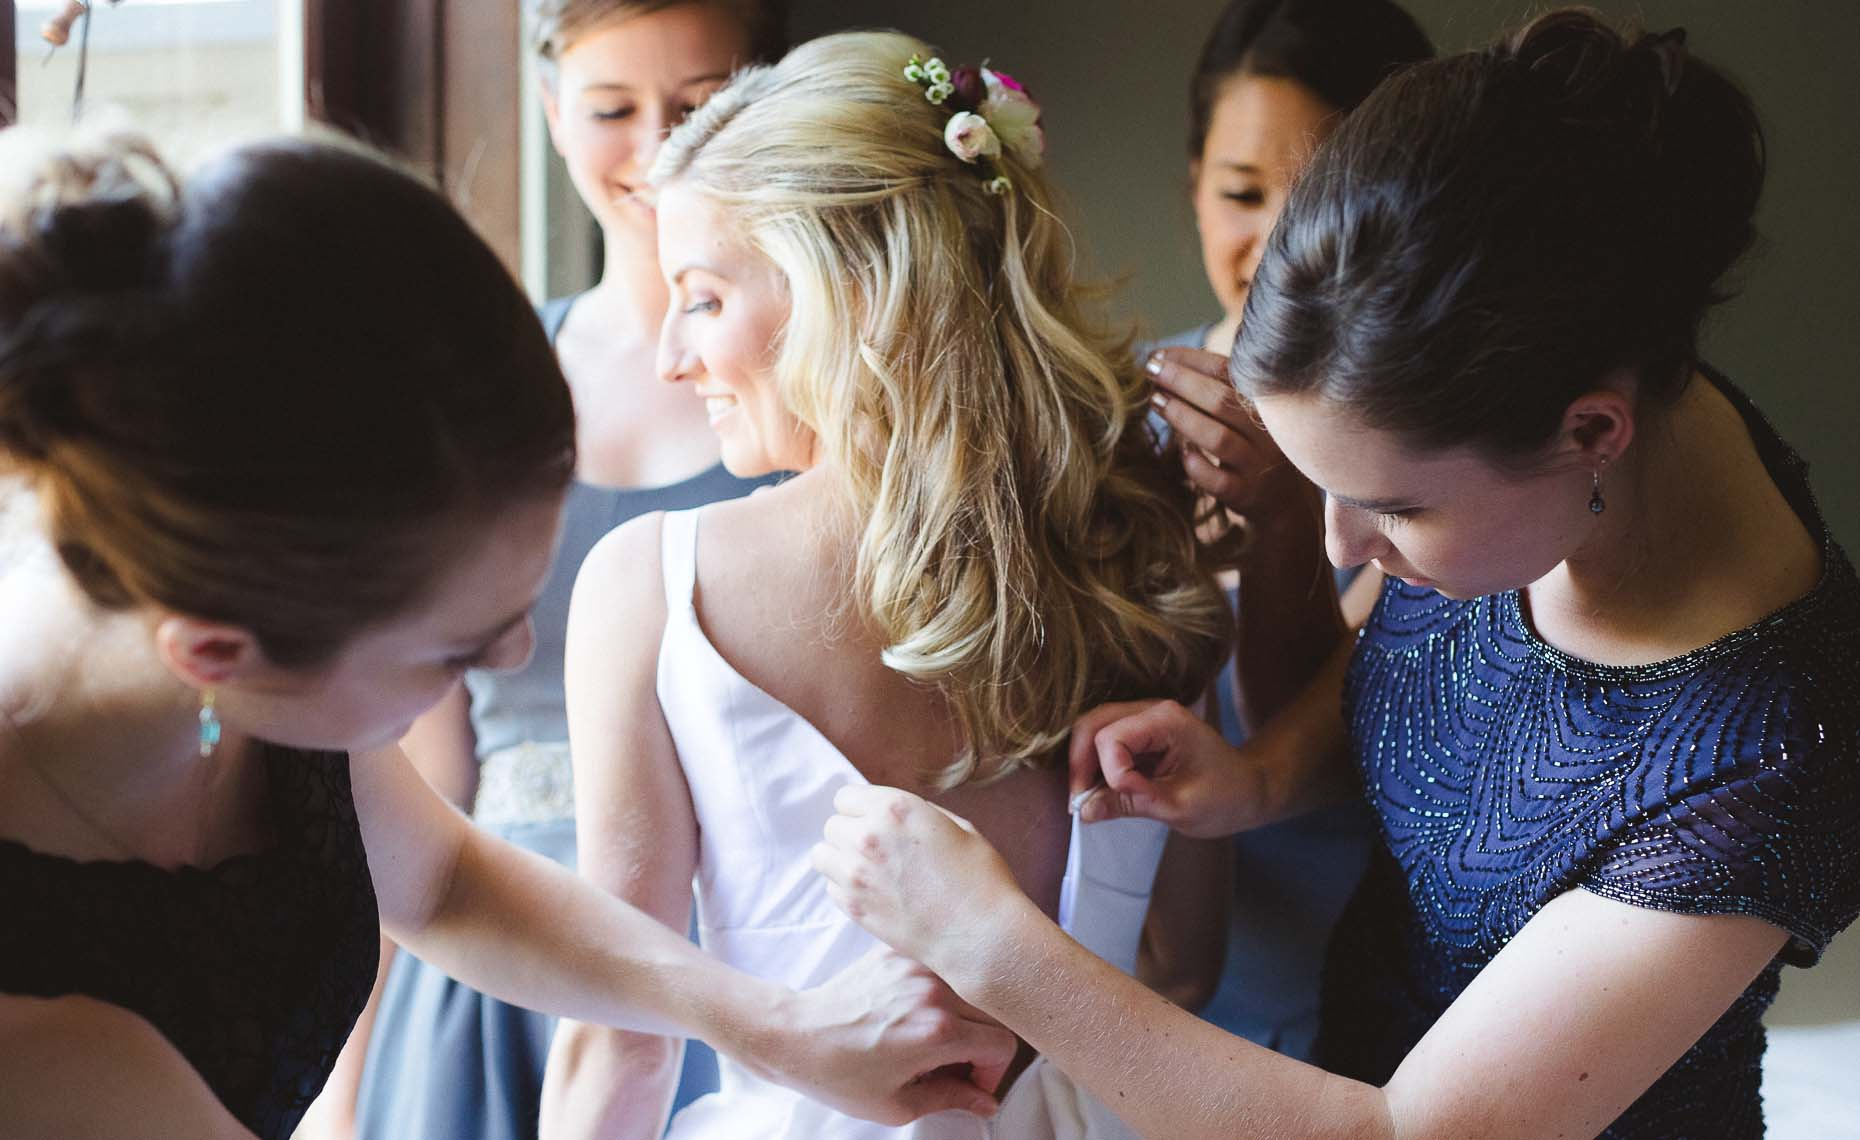 Bride gets ready in pemberton farm wedding.